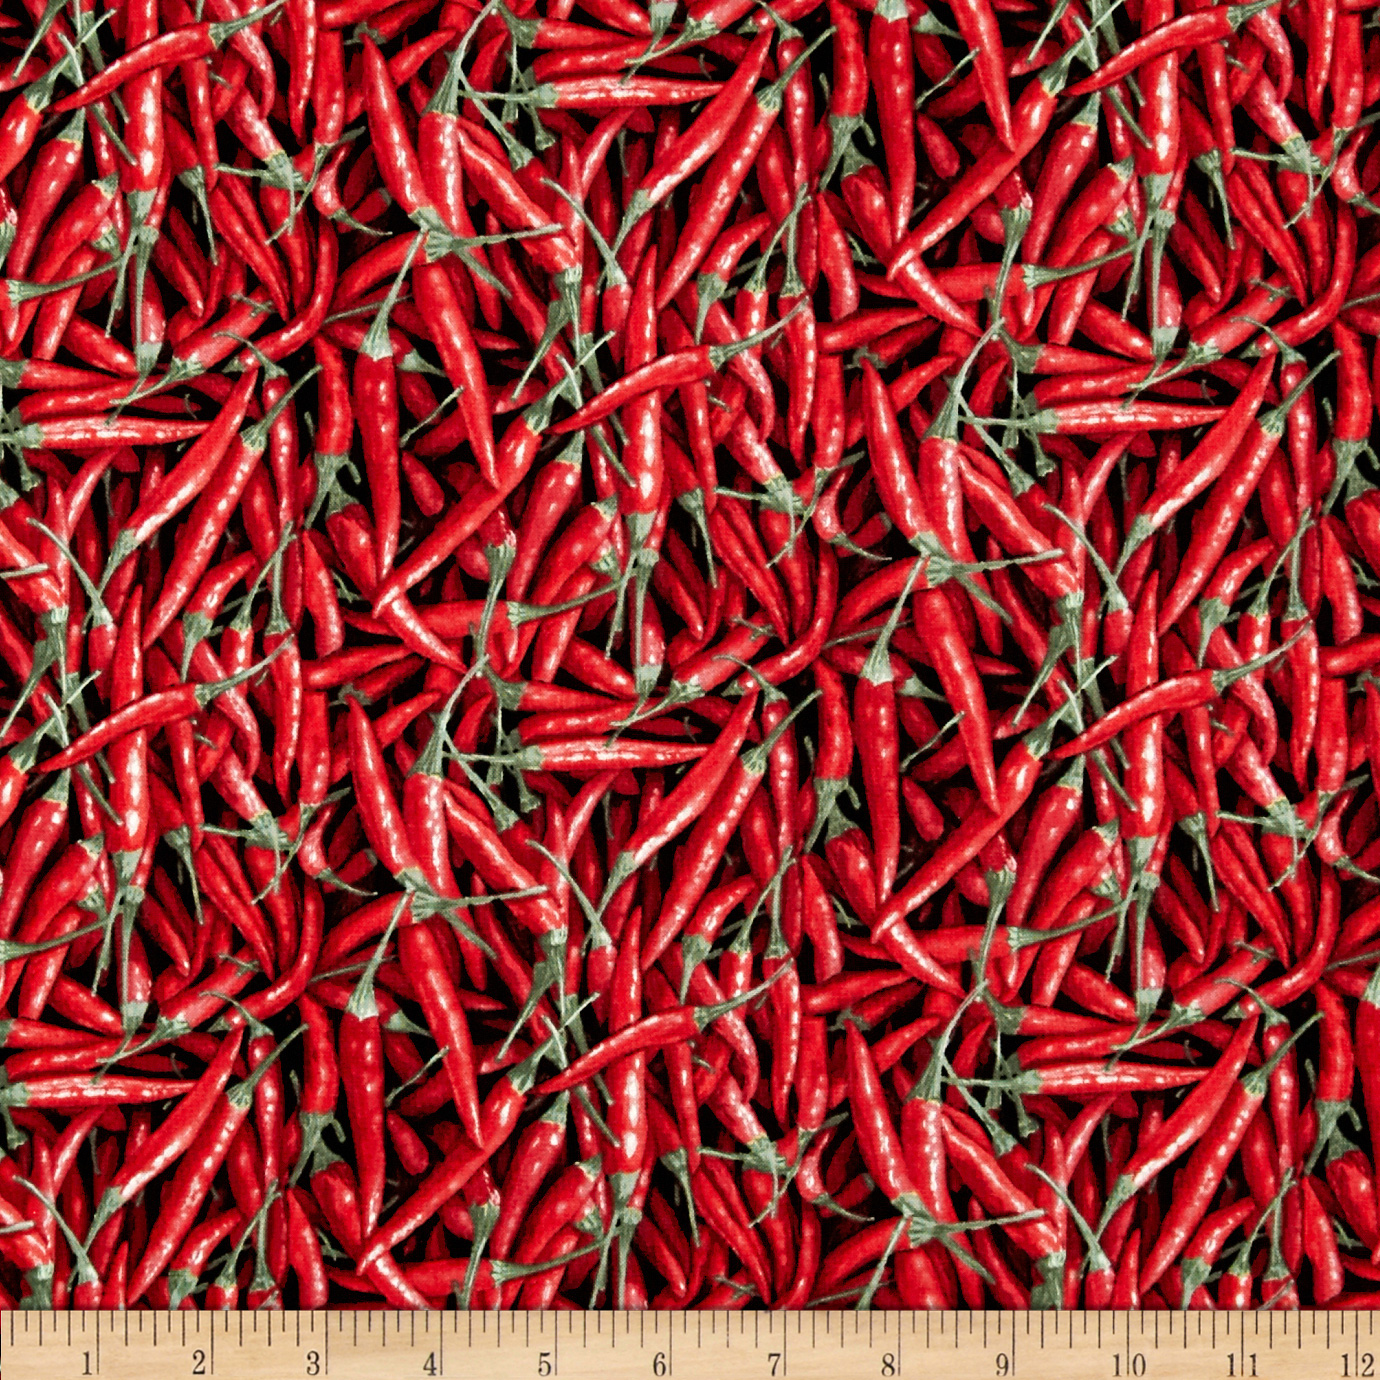 Farmer John's Organic Chili Peppers Red Fabric